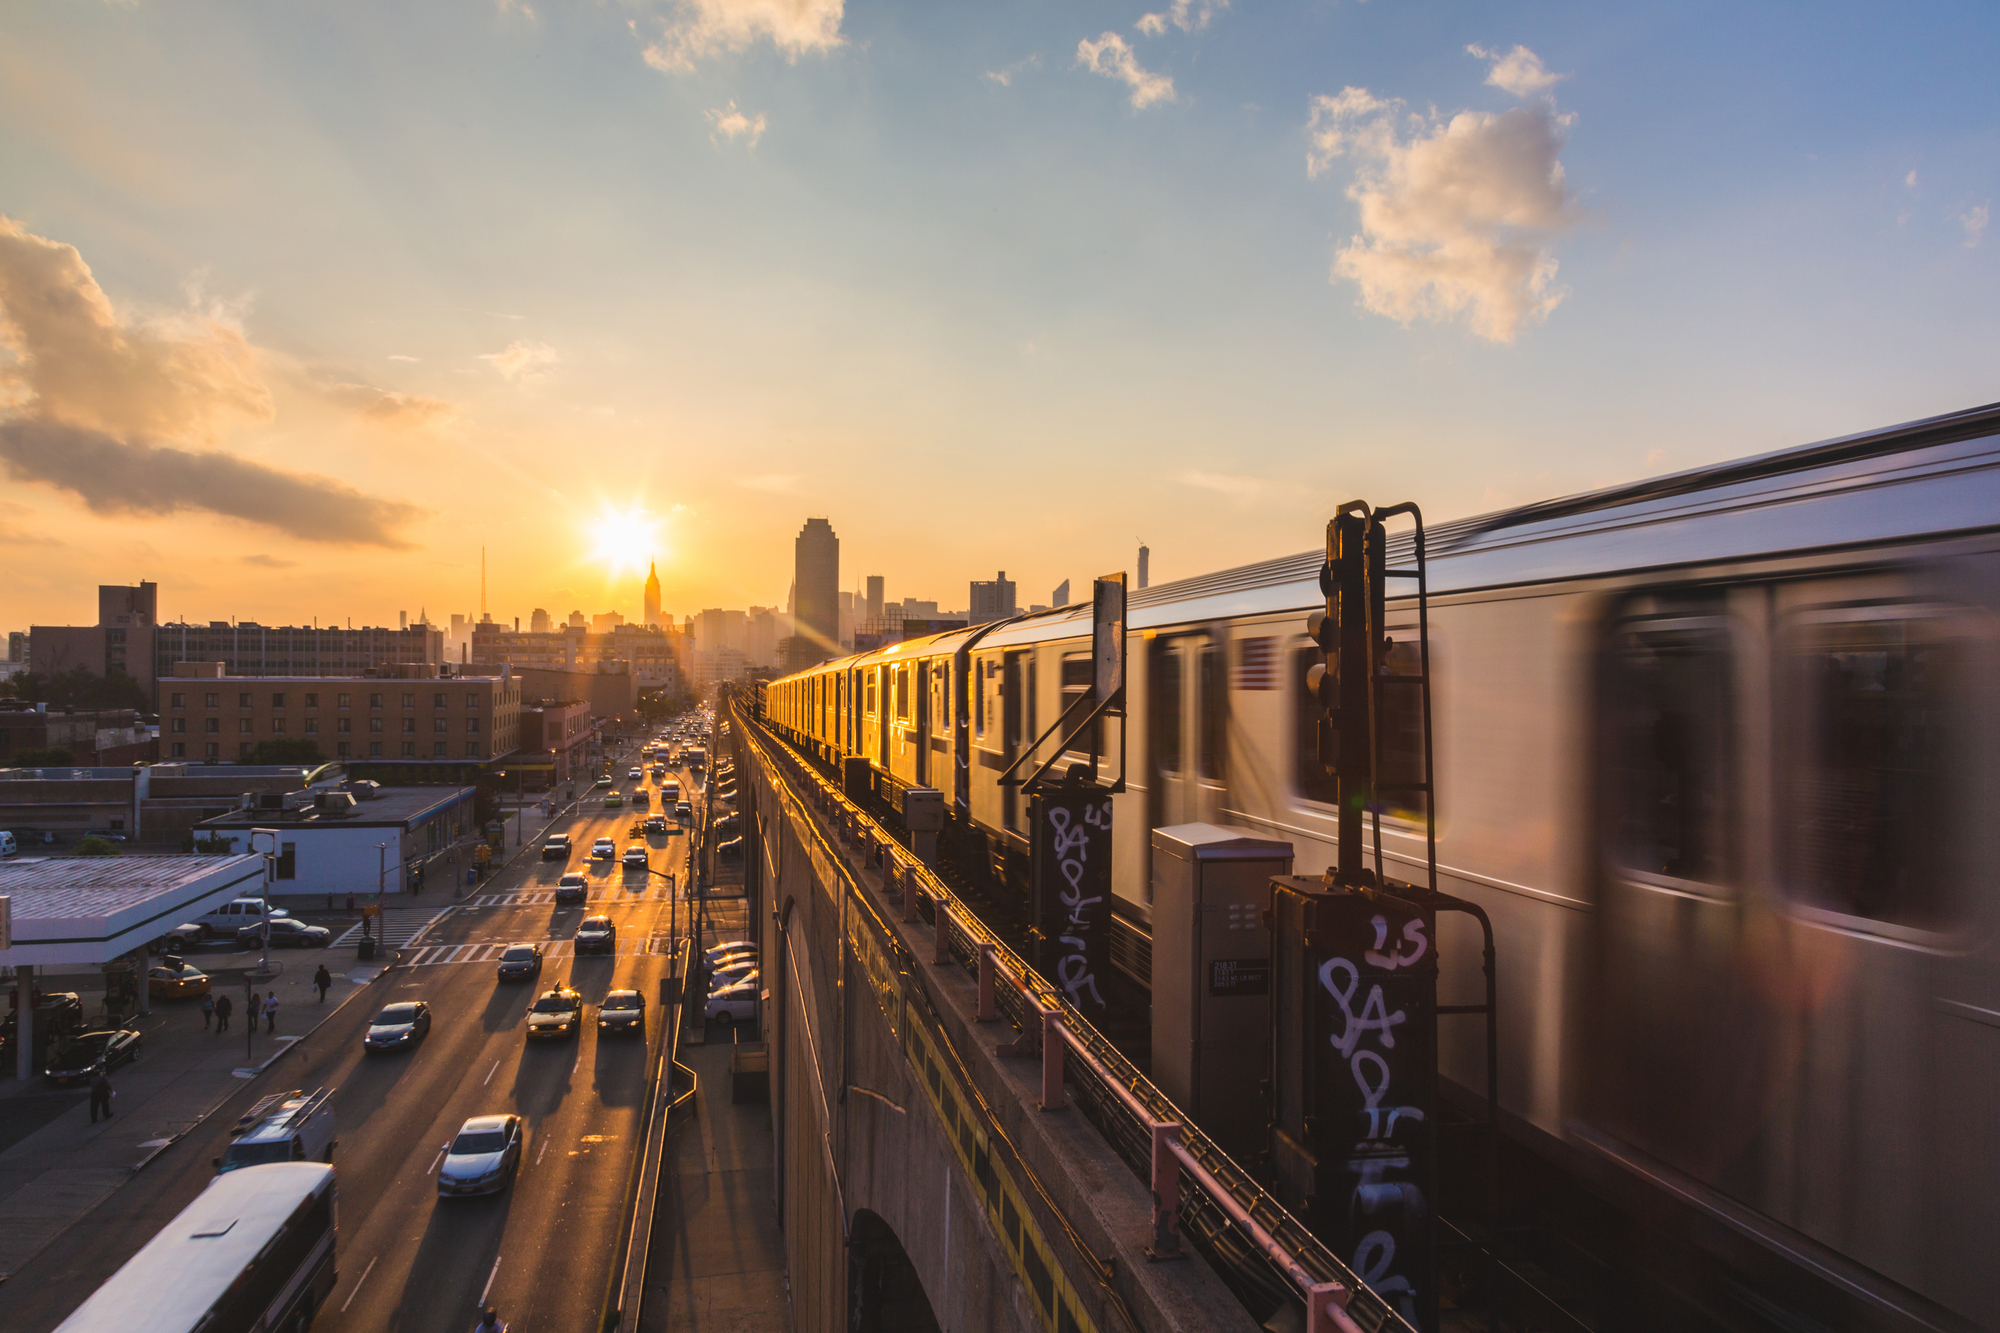 picture-of-new-york-subway-how-much-spending-money-for-new-york